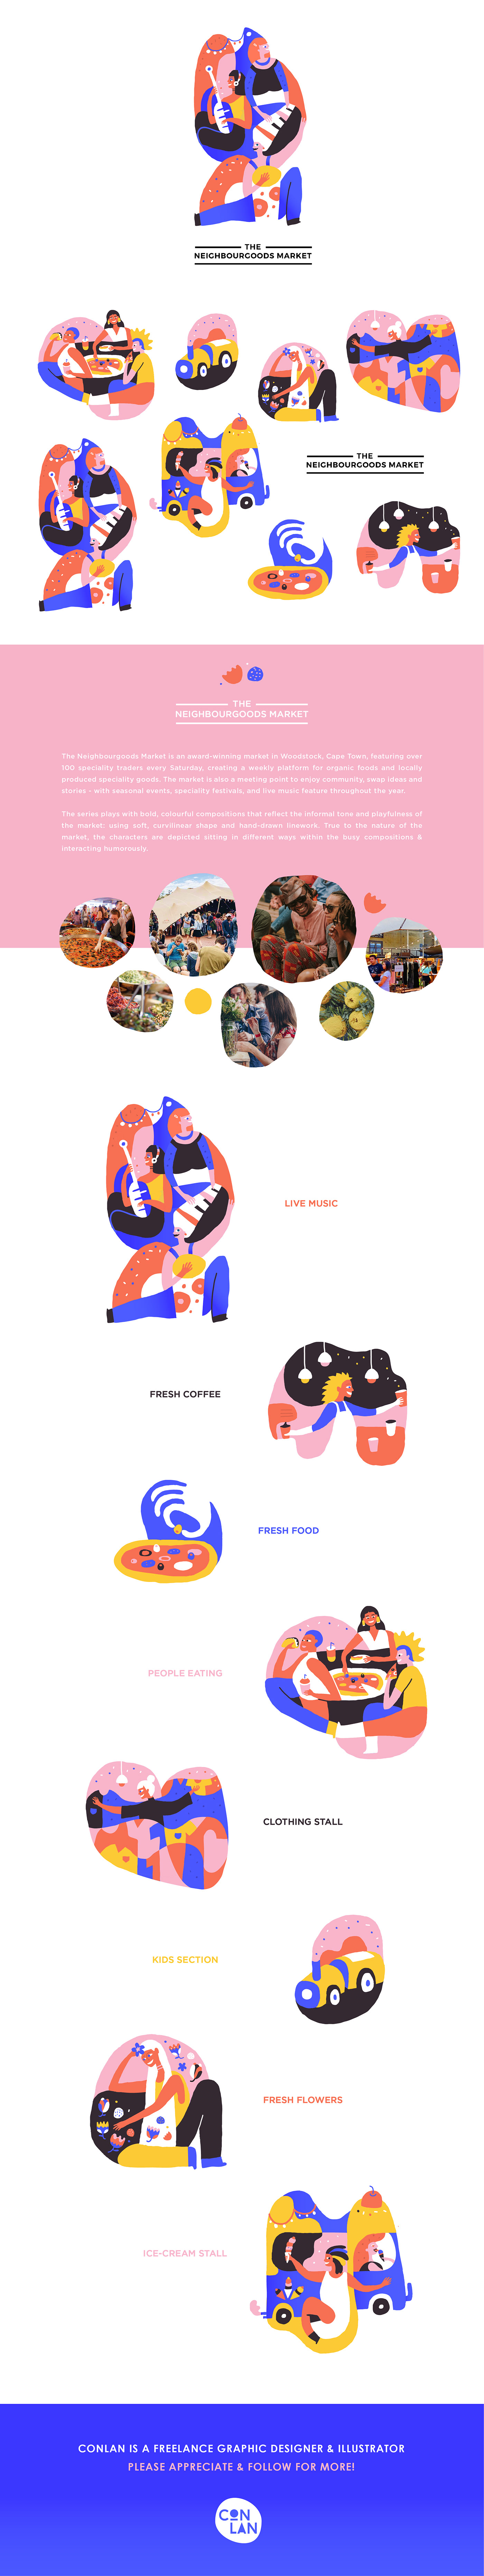 characters hand-drawn Colourful  curvilinear market festivals The Neighbourgoods Market cape town humorous adobeawards